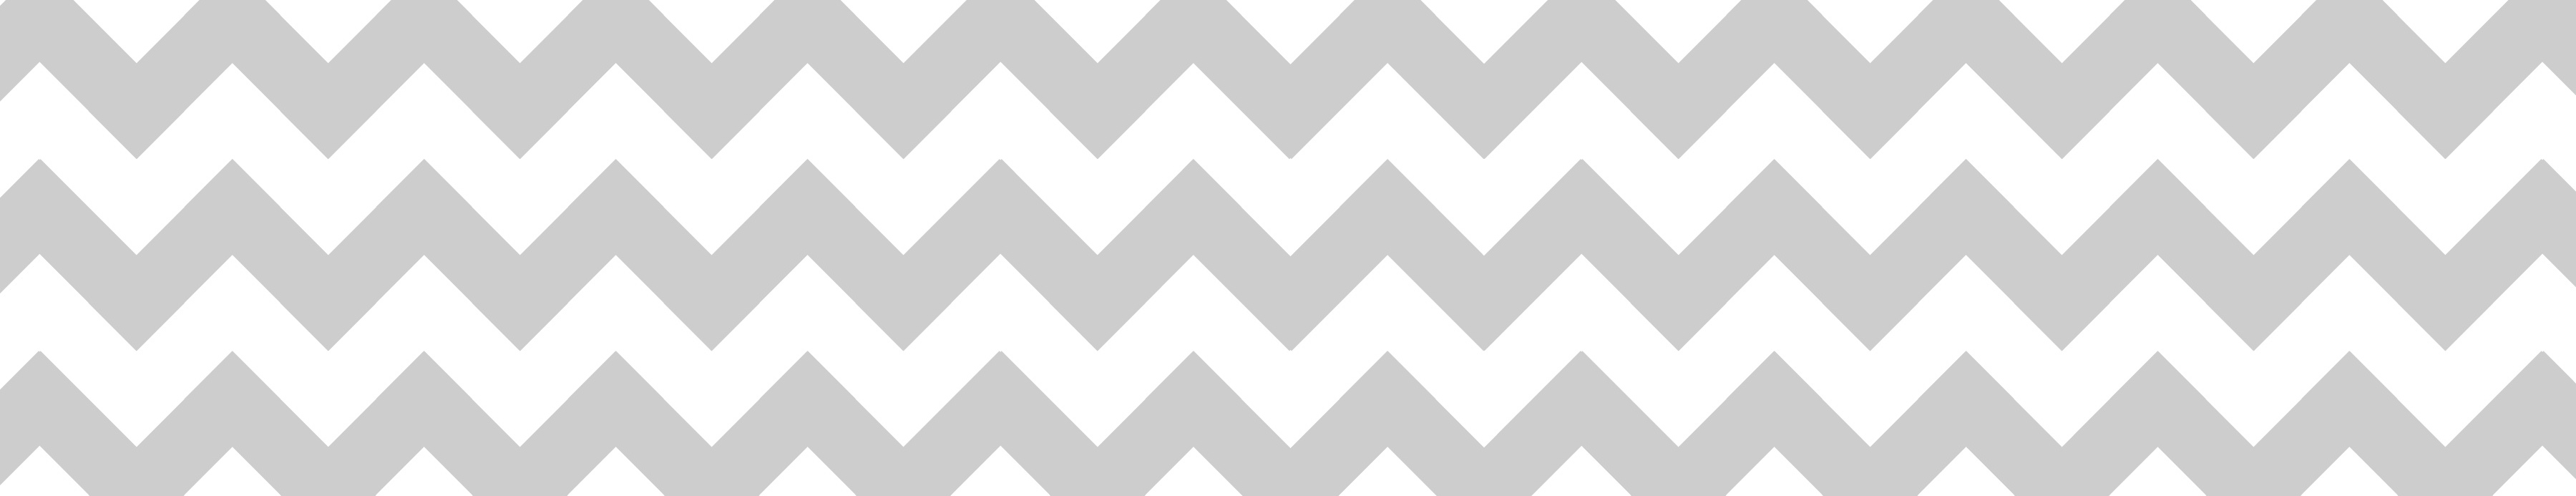 Grey And White Chevron Wallpaper Photo Stock Gallery 3600x693